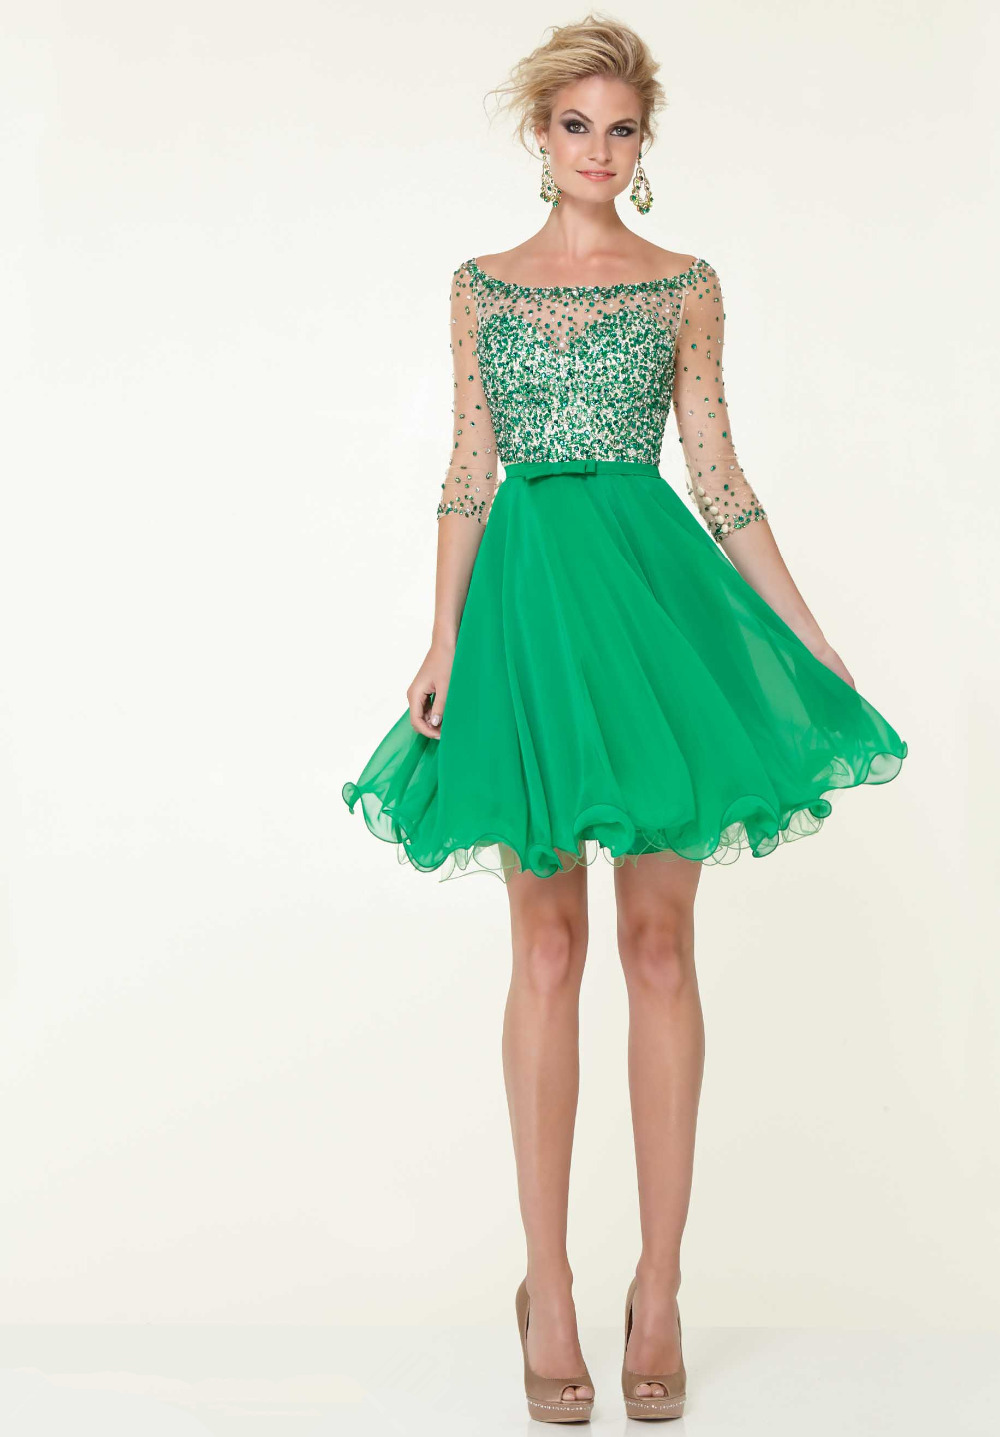 Short Green Homecoming Dresses Promotion-Shop for Promotional ...